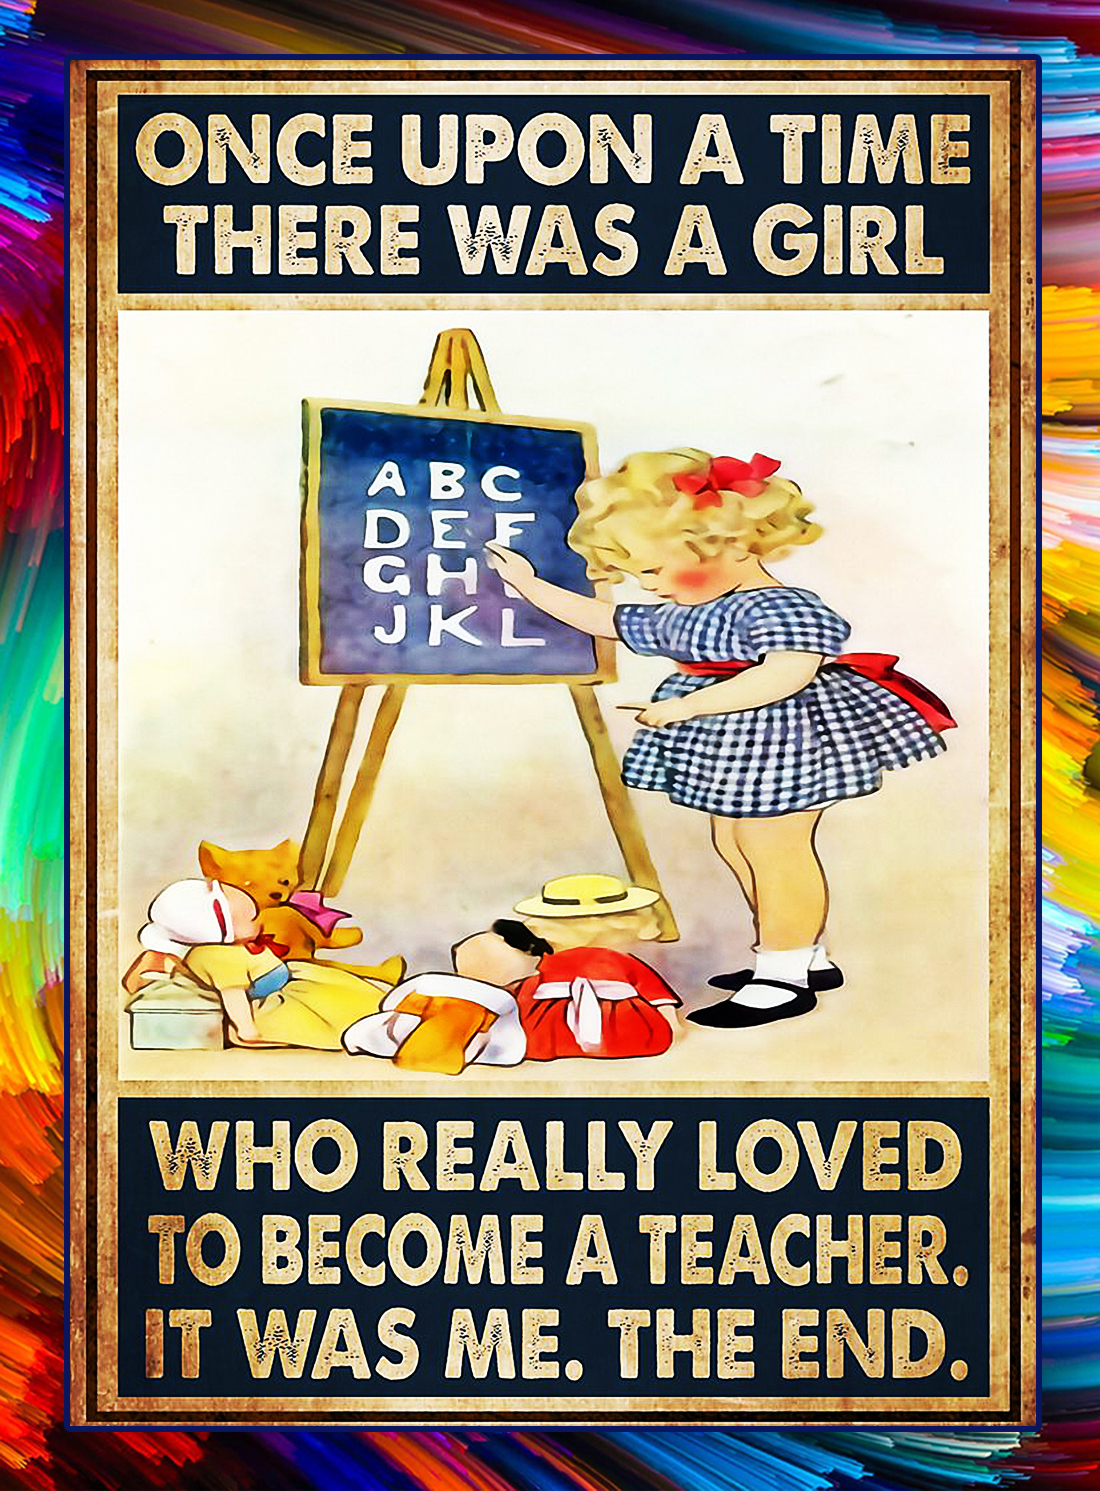 There was a girl who really loved to become a teacher poster